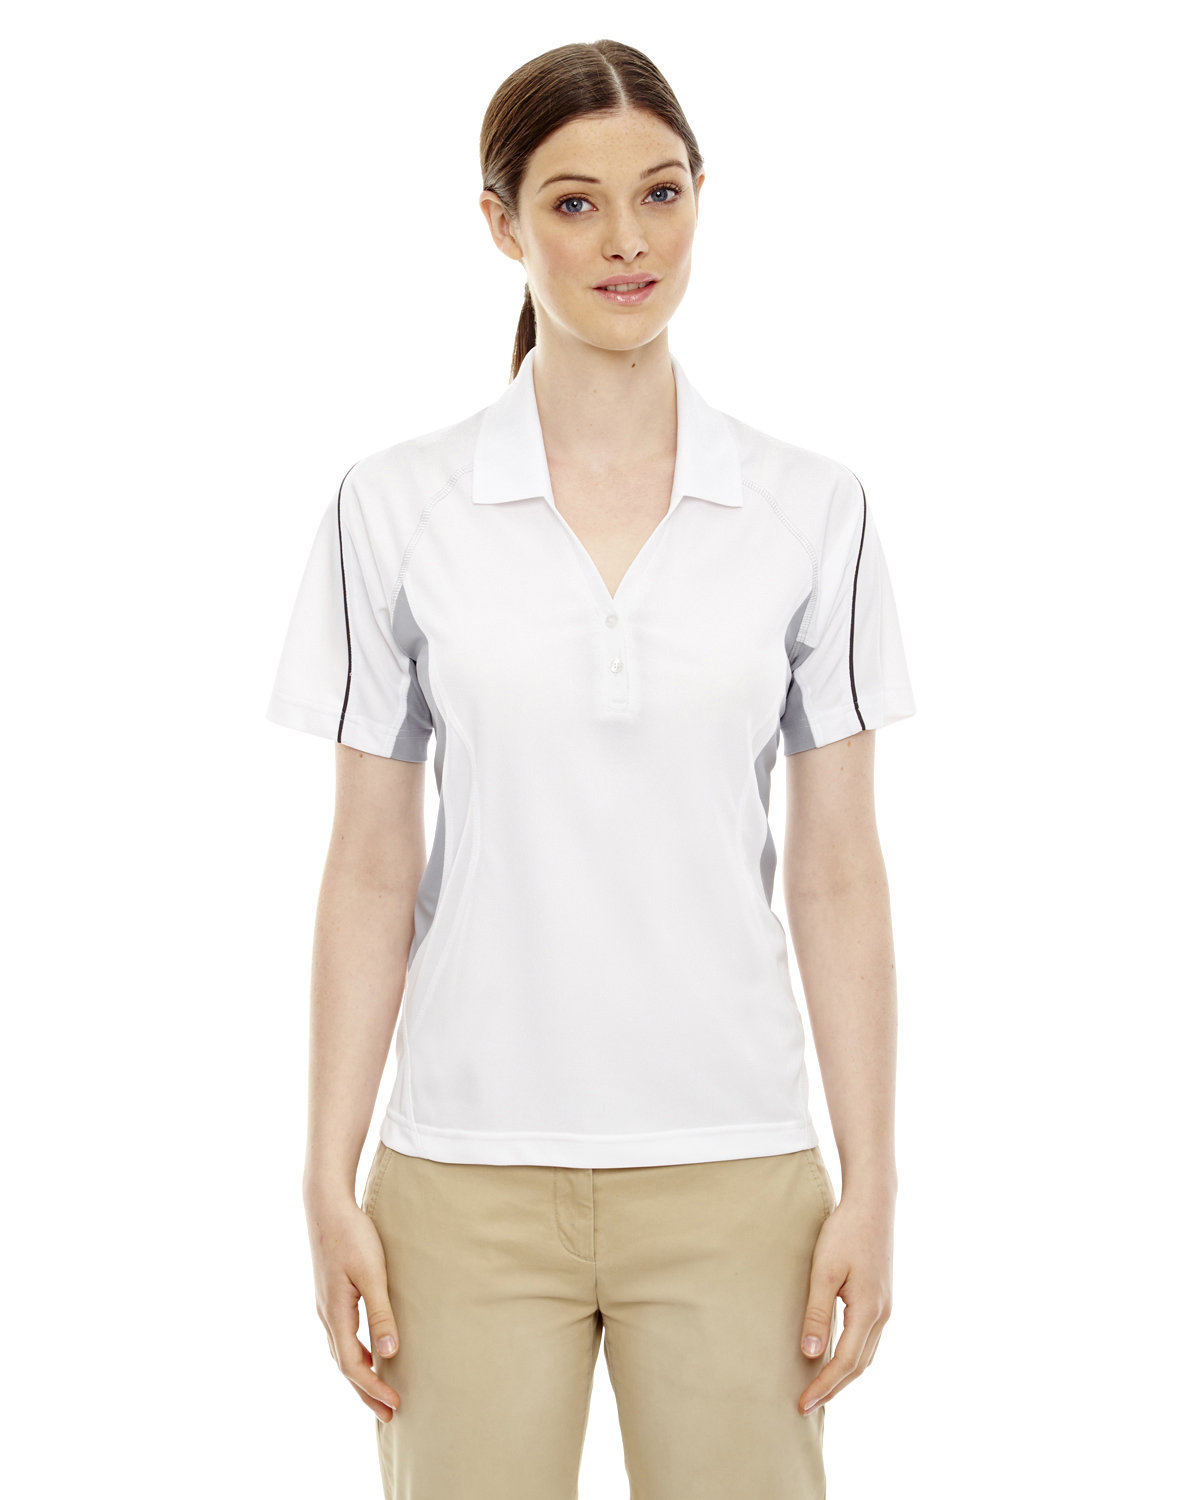 Extreme Ladies' Eperformance™ Parallel Snag Protection Polo with Piping WHITE